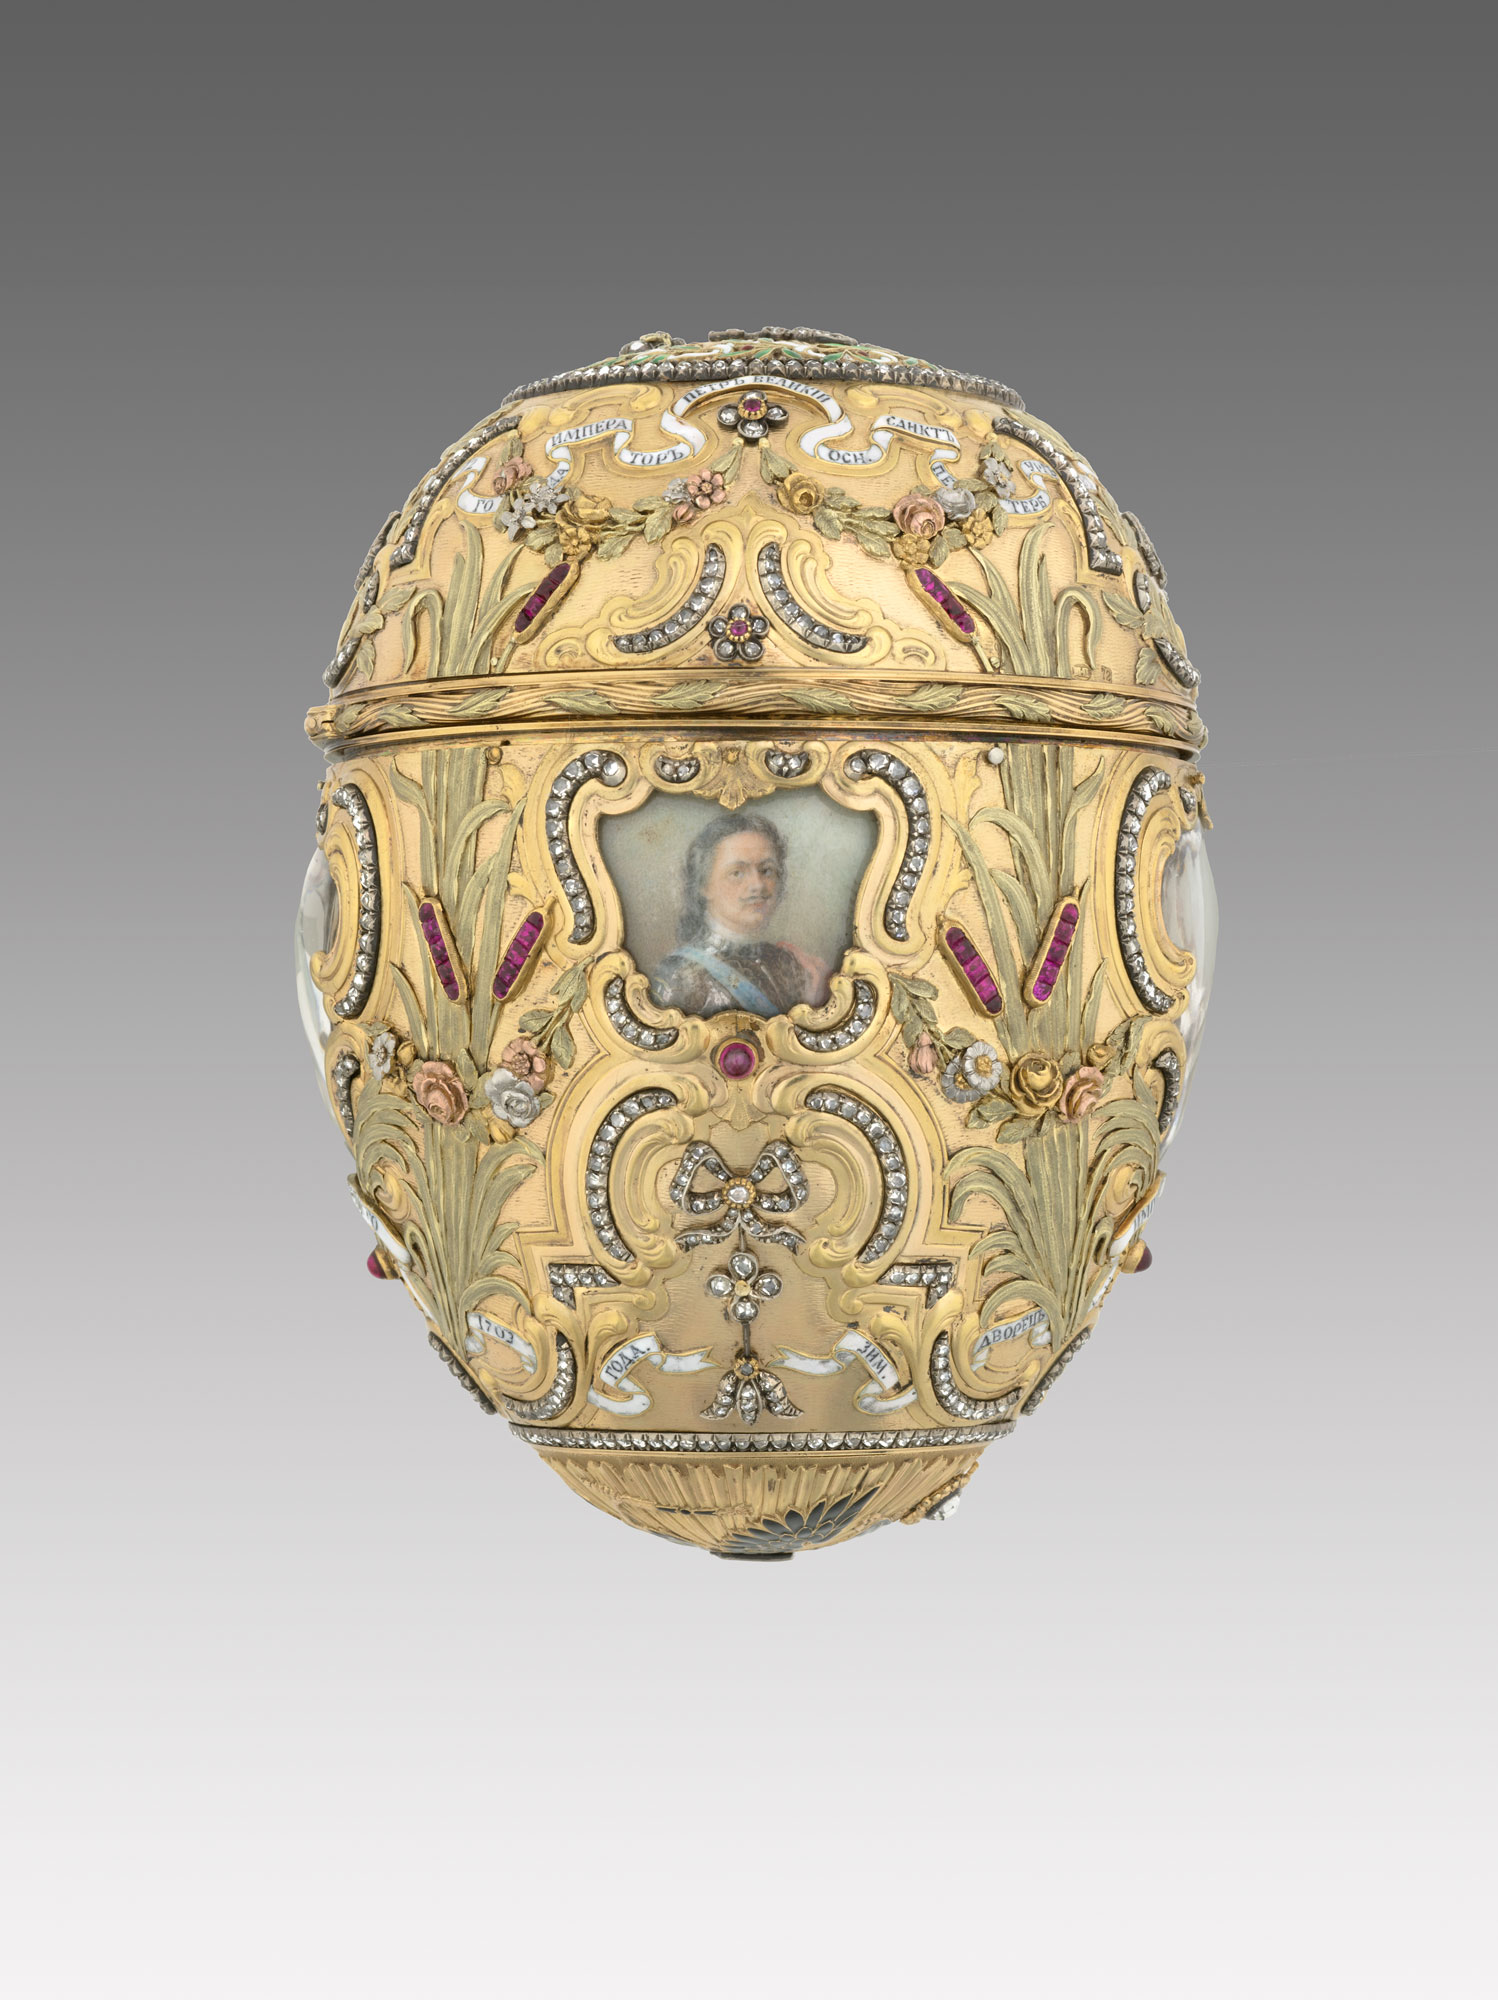 Carl Fabergé (1846–1920), Fabergé workshop, Mikhail Perkhin (workmaster). Imperial Peter the Great Easter Egg , 1903. Egg: gold, platinum, silver gilt, diamonds, rubies, enamel, watercolor, ivory, rock crystal. Surprise: gilt bronze, sapphire. Egg: 12 x 7.9 cm, Surprise: 4.7 x 6.9 cm, Stand: 7.7 x 6.9 cm, Virginia Museum of Fine Arts, Bequest of Lillian Thomas Pratt. This was featured in  Faberge, Jeweller to the Czars  last year at the Montreal Museum of Fine Arts.(Photo courtesy The Montreal Museum of Fine Arts)